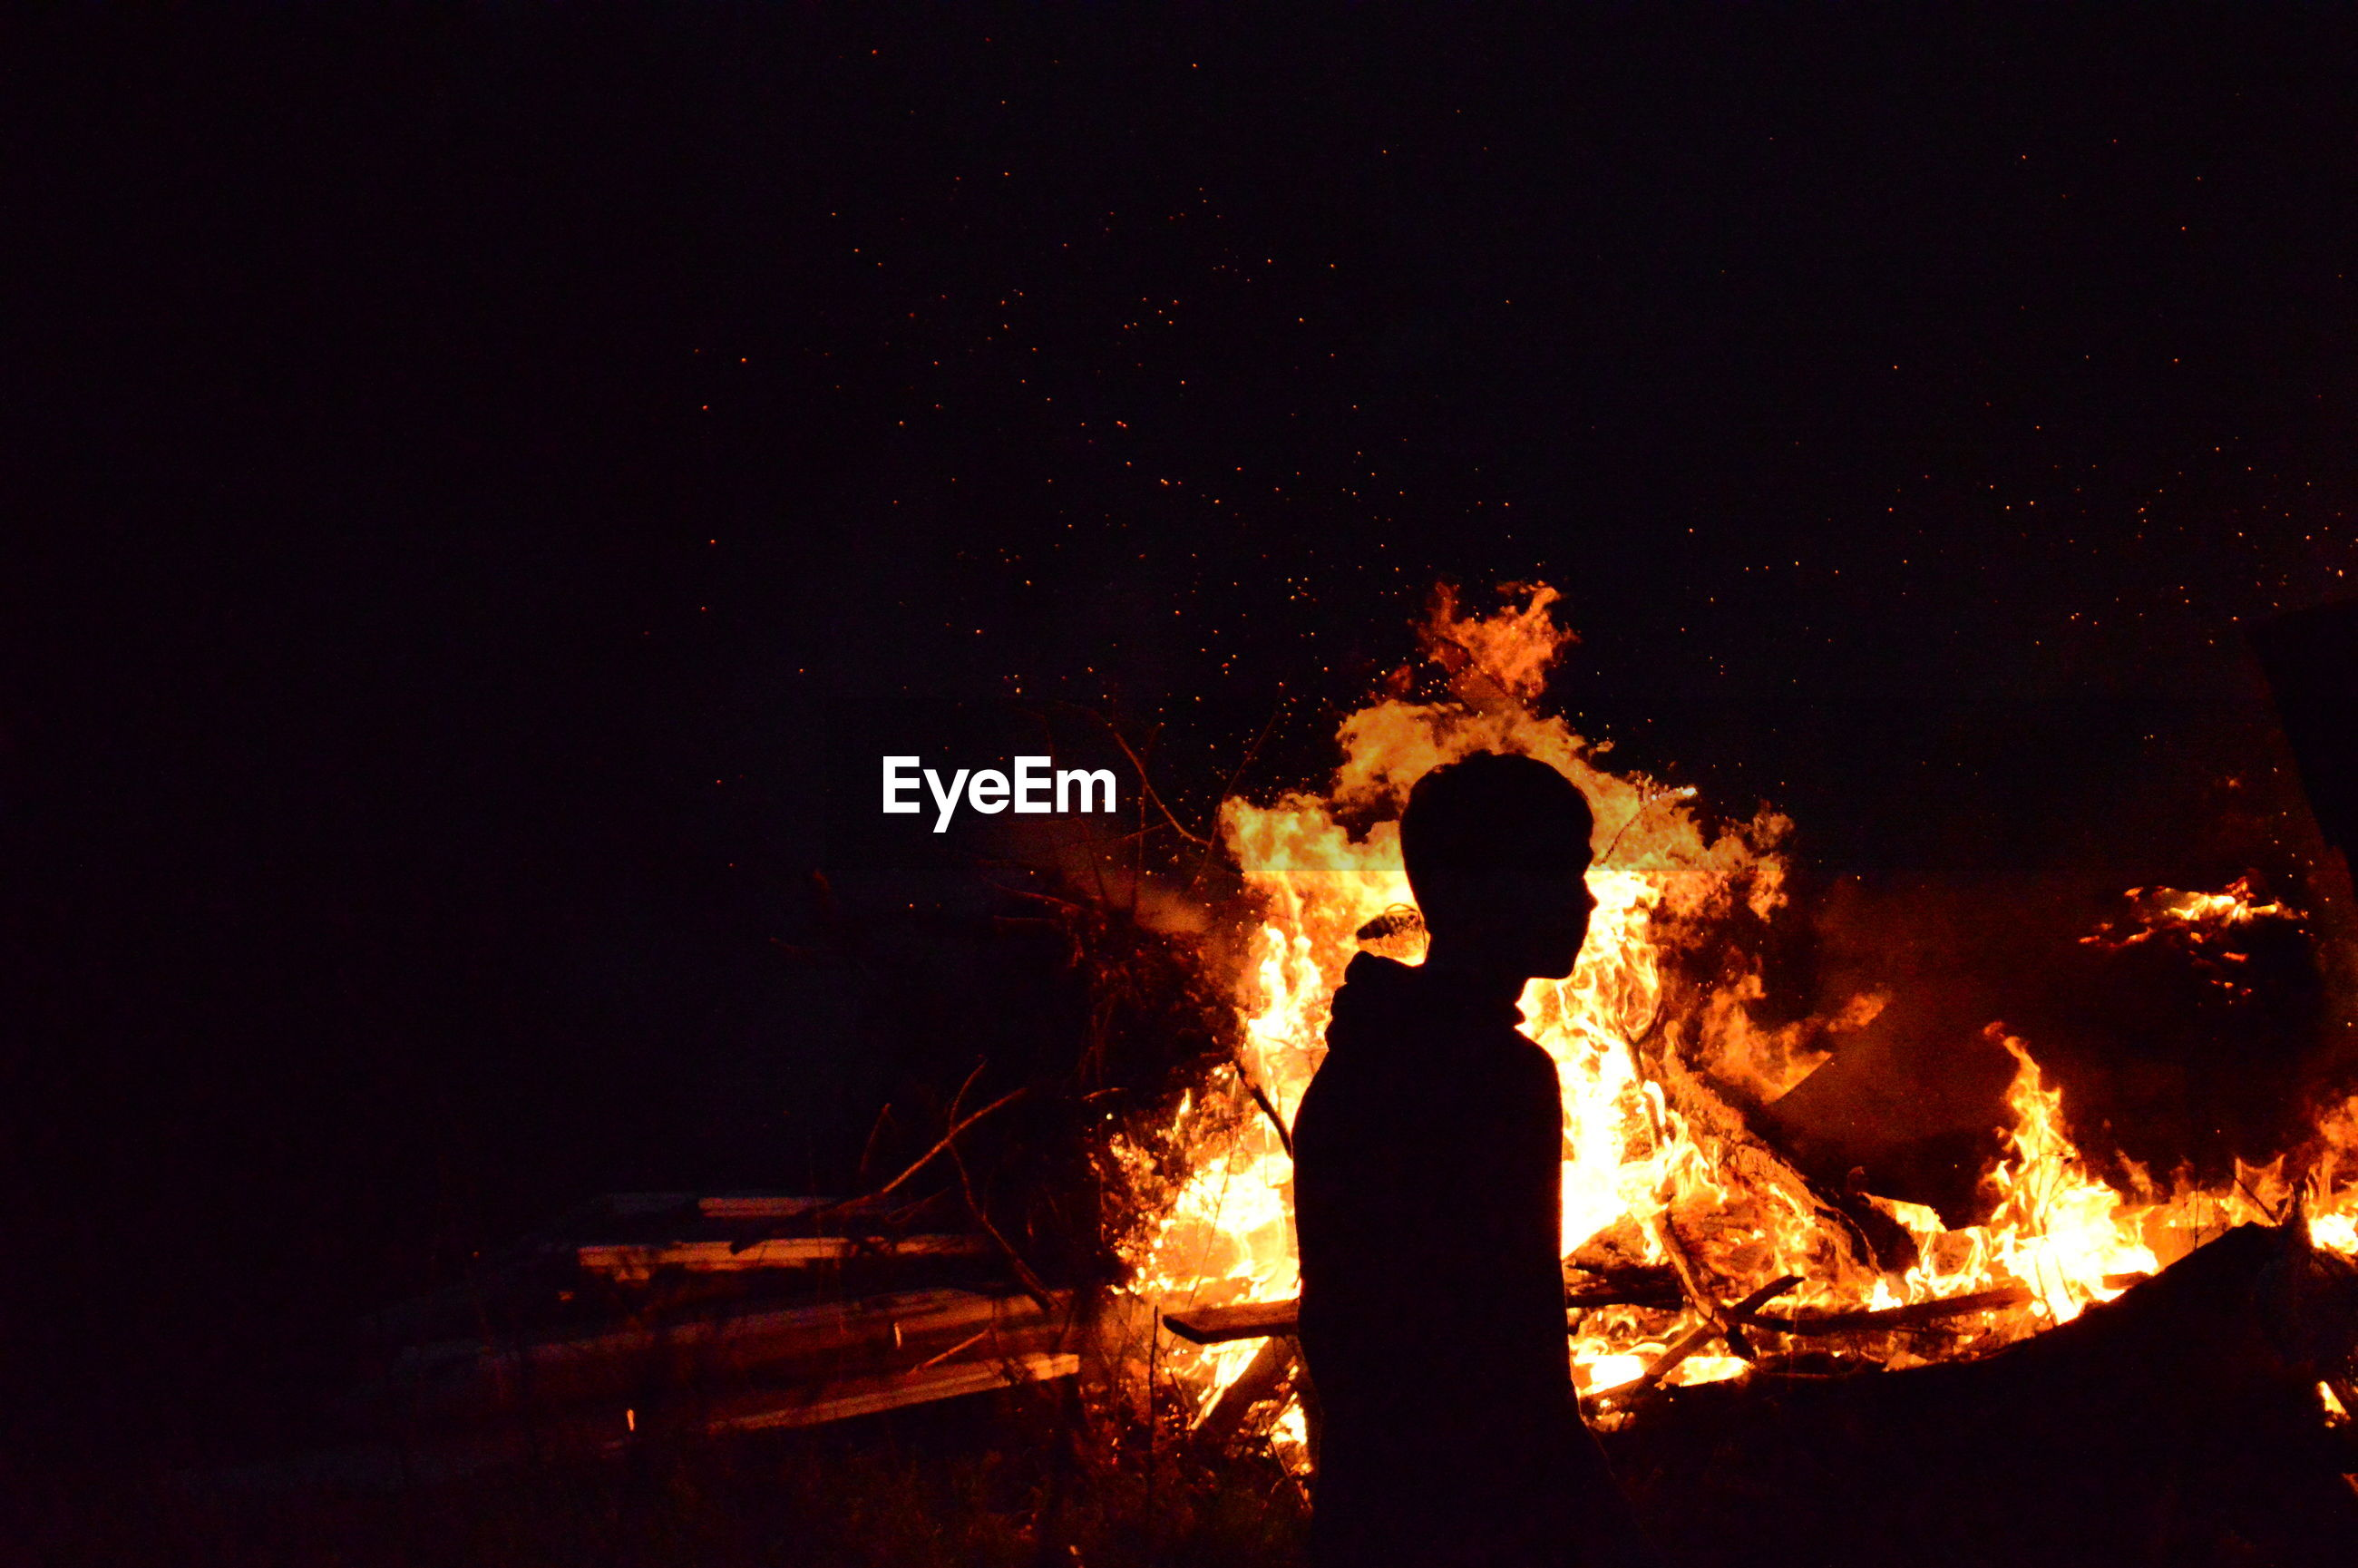 flame, burning, night, real people, heat - temperature, danger, silhouette, one person, men, glowing, motion, standing, outdoors, bonfire, leisure activity, risk, lifestyles, nature, women, sky, people